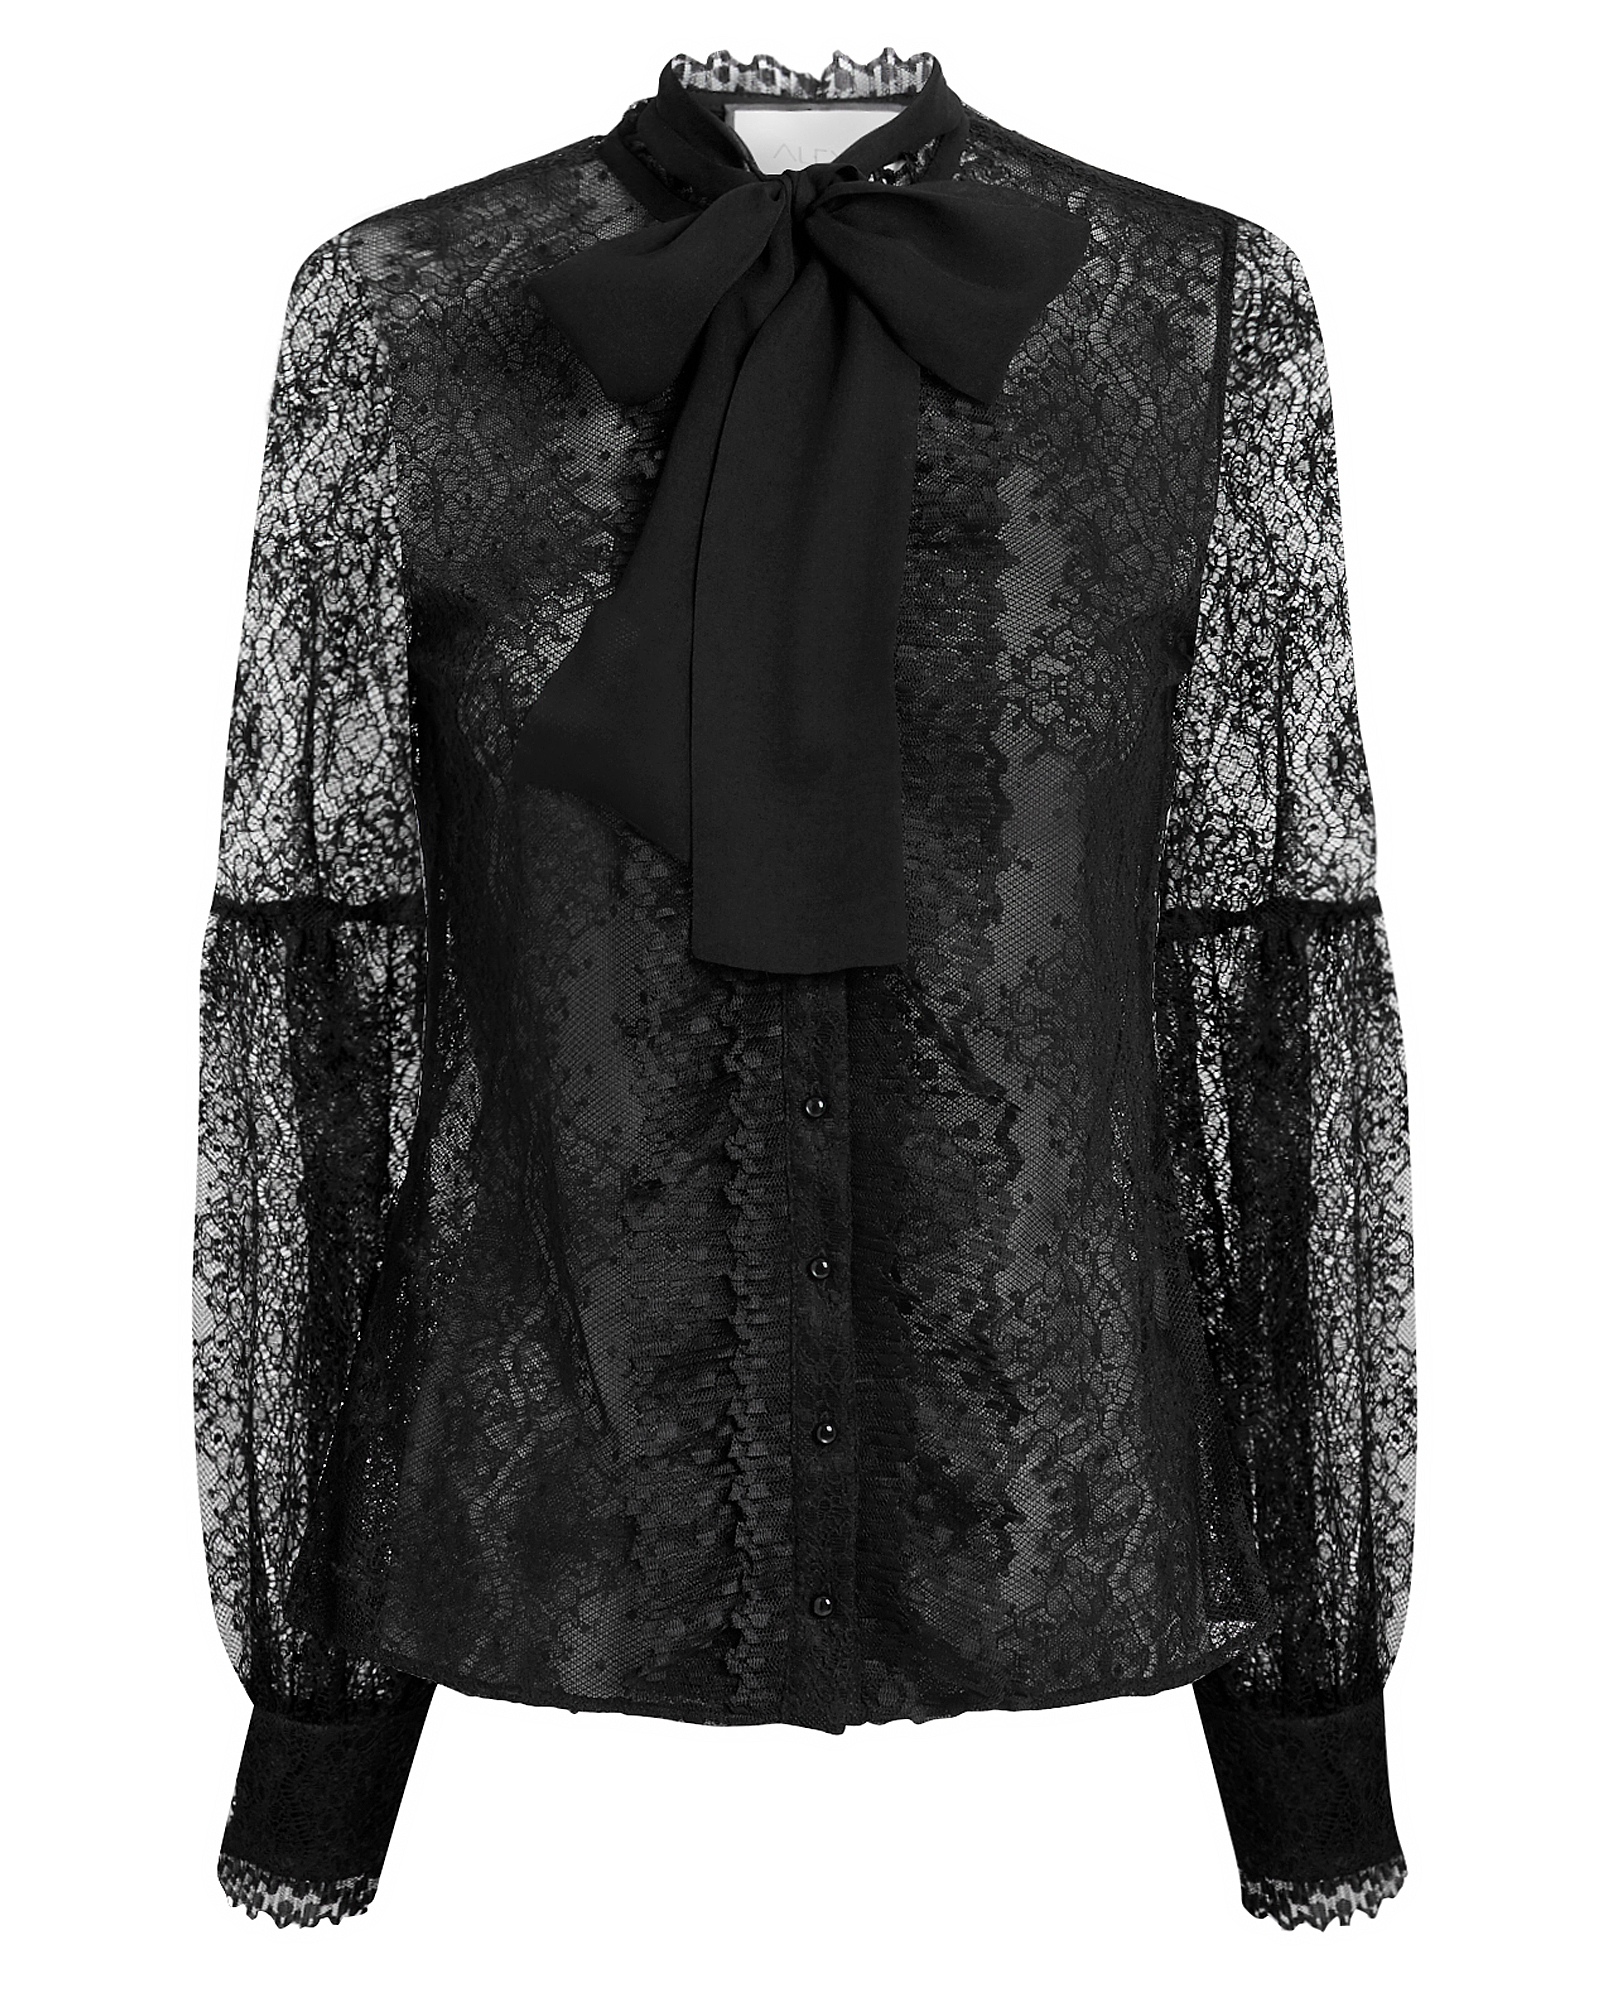 Alexi Chari Tie Neck Lace Top Black